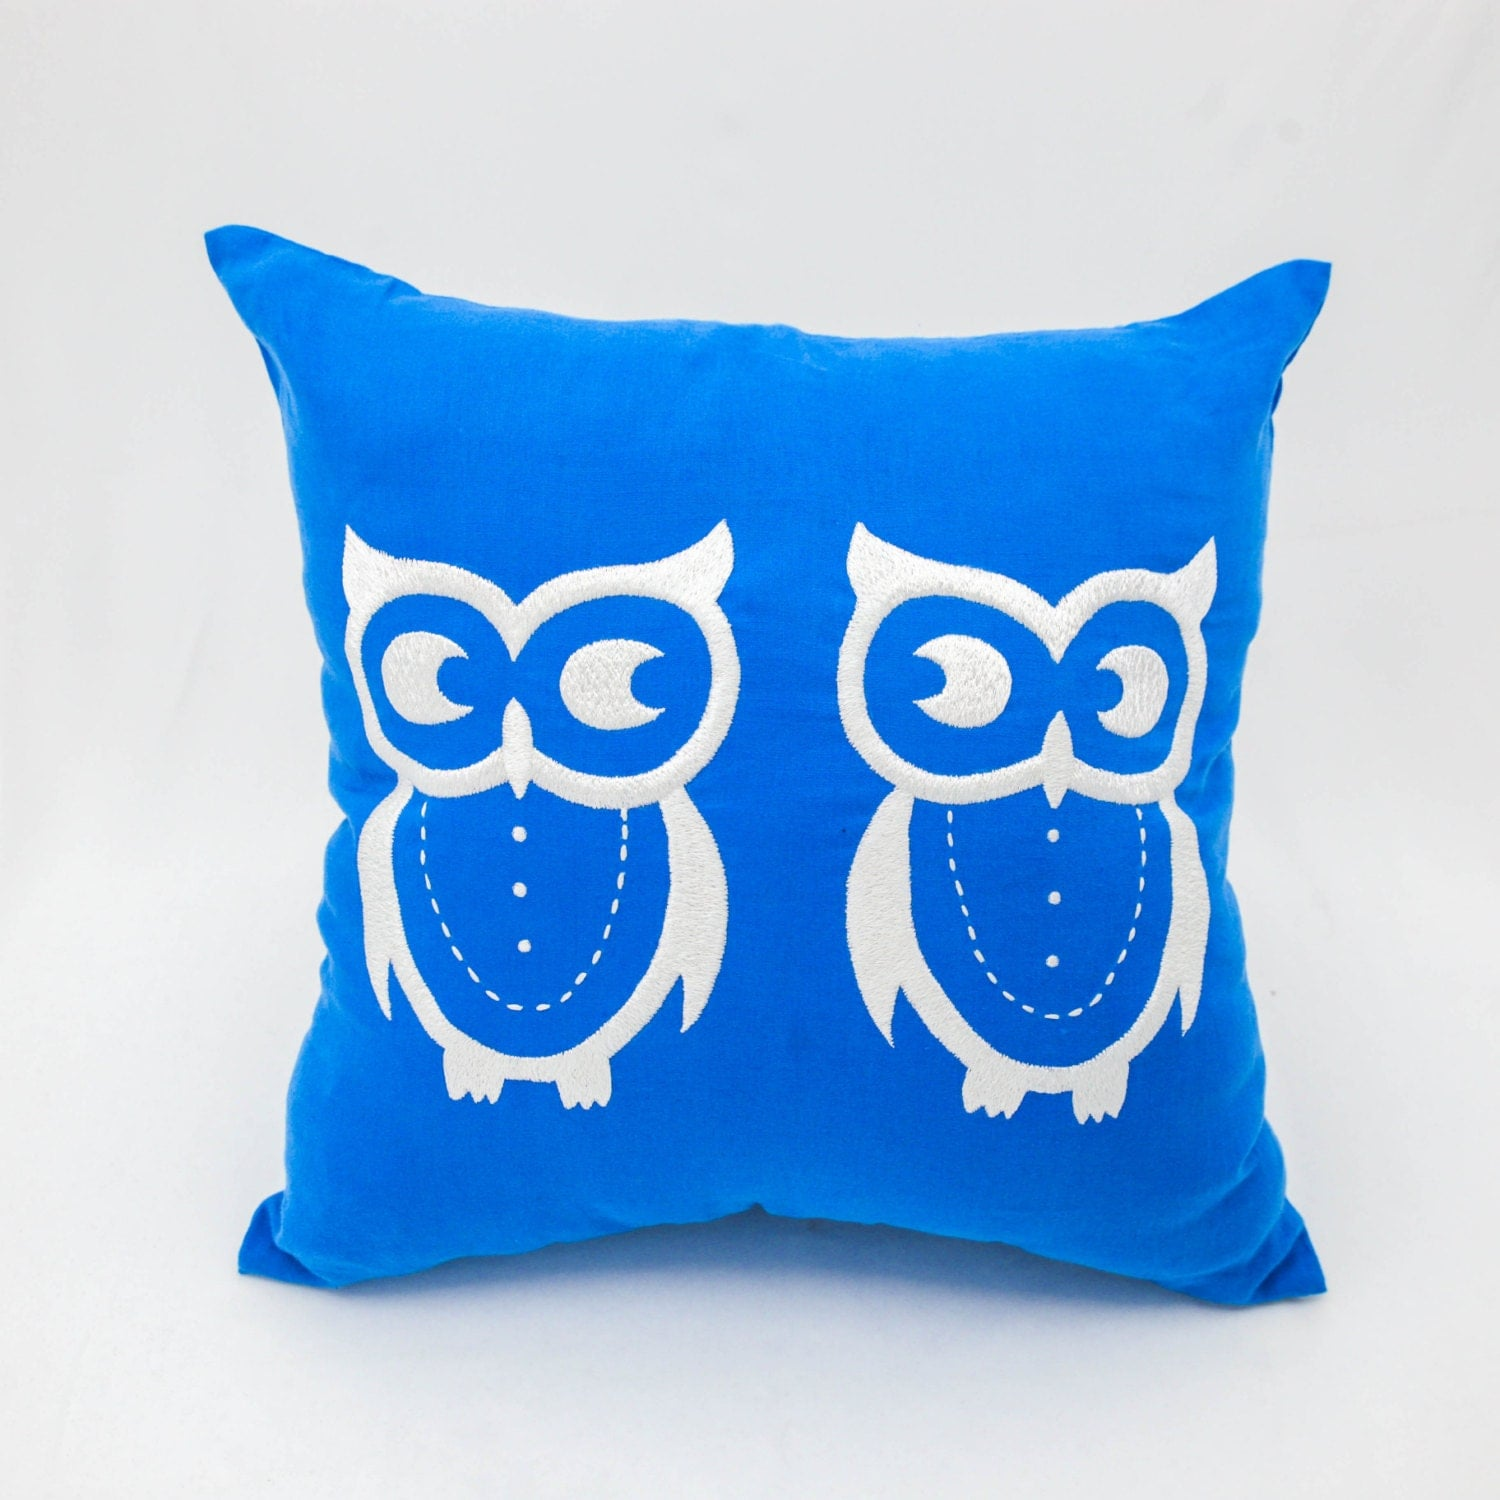 Throw Pillows With Birds : Owls Throw Pillow Covers Bird Decorative Pillow Owl Couch